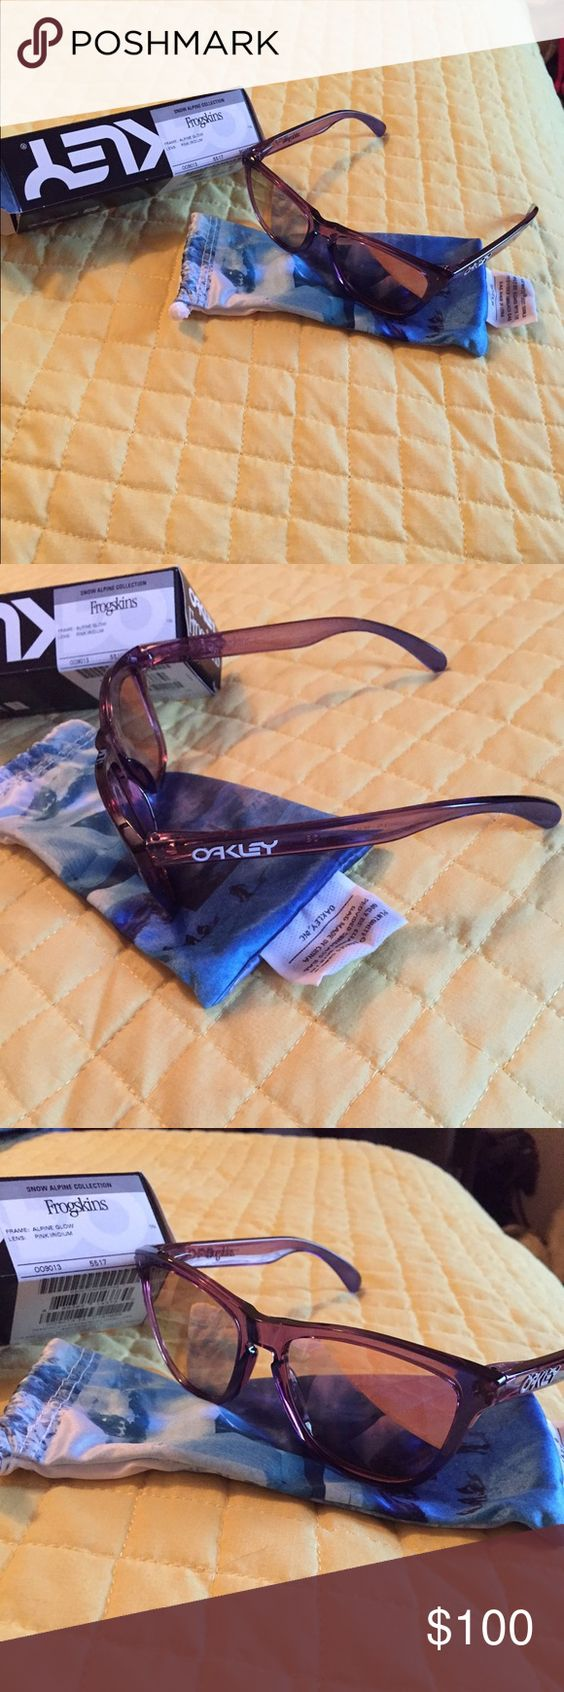 Oakley Frogskins Alpine snow collection OO9013-73 Brand new never worn Oakley Frogskins Alpine Snow collection style OO9013-73. Pink with purple ends with pink iridium non polarized lenses. Comes with original box and microfiber case. Oakley Accessories Sunglasses